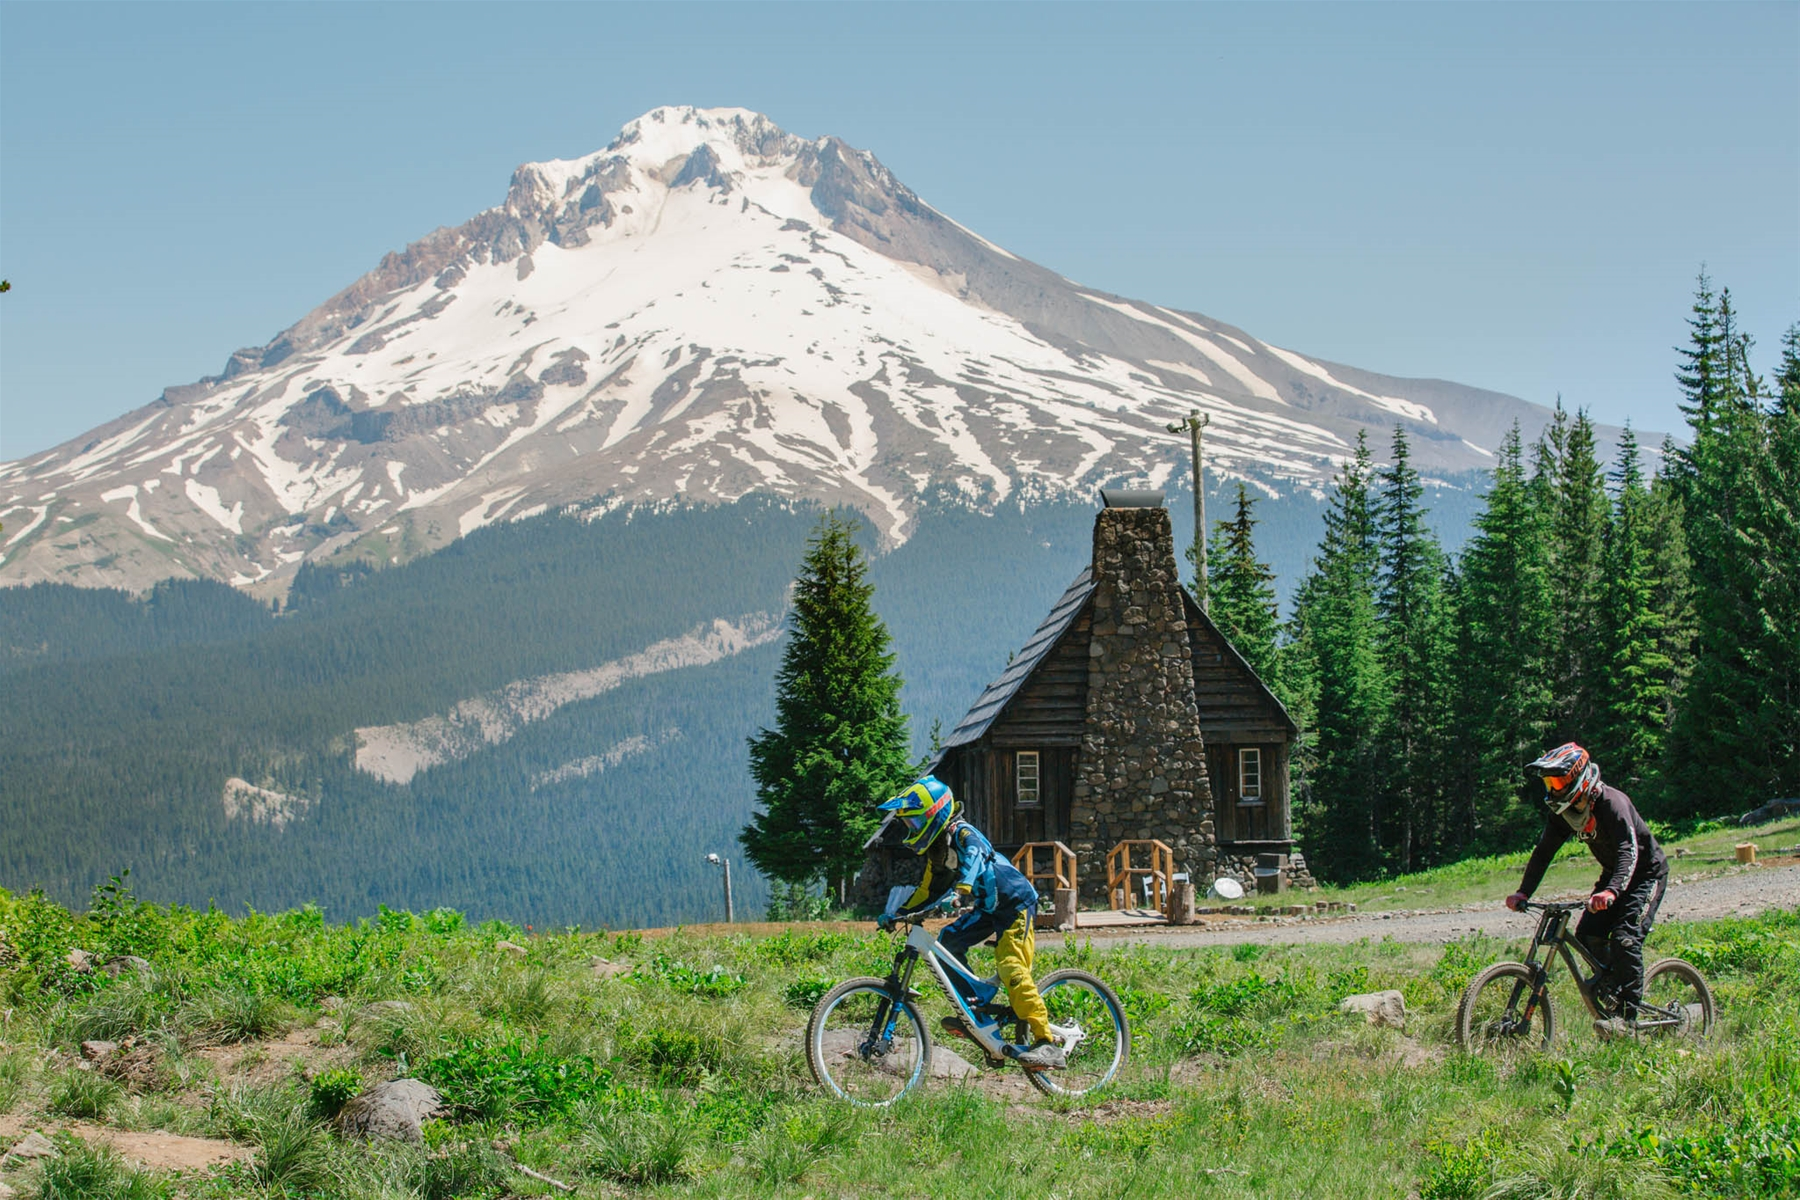 Mt. Hood Skibowl Bike Park is Right Next to Collins Lake Resort